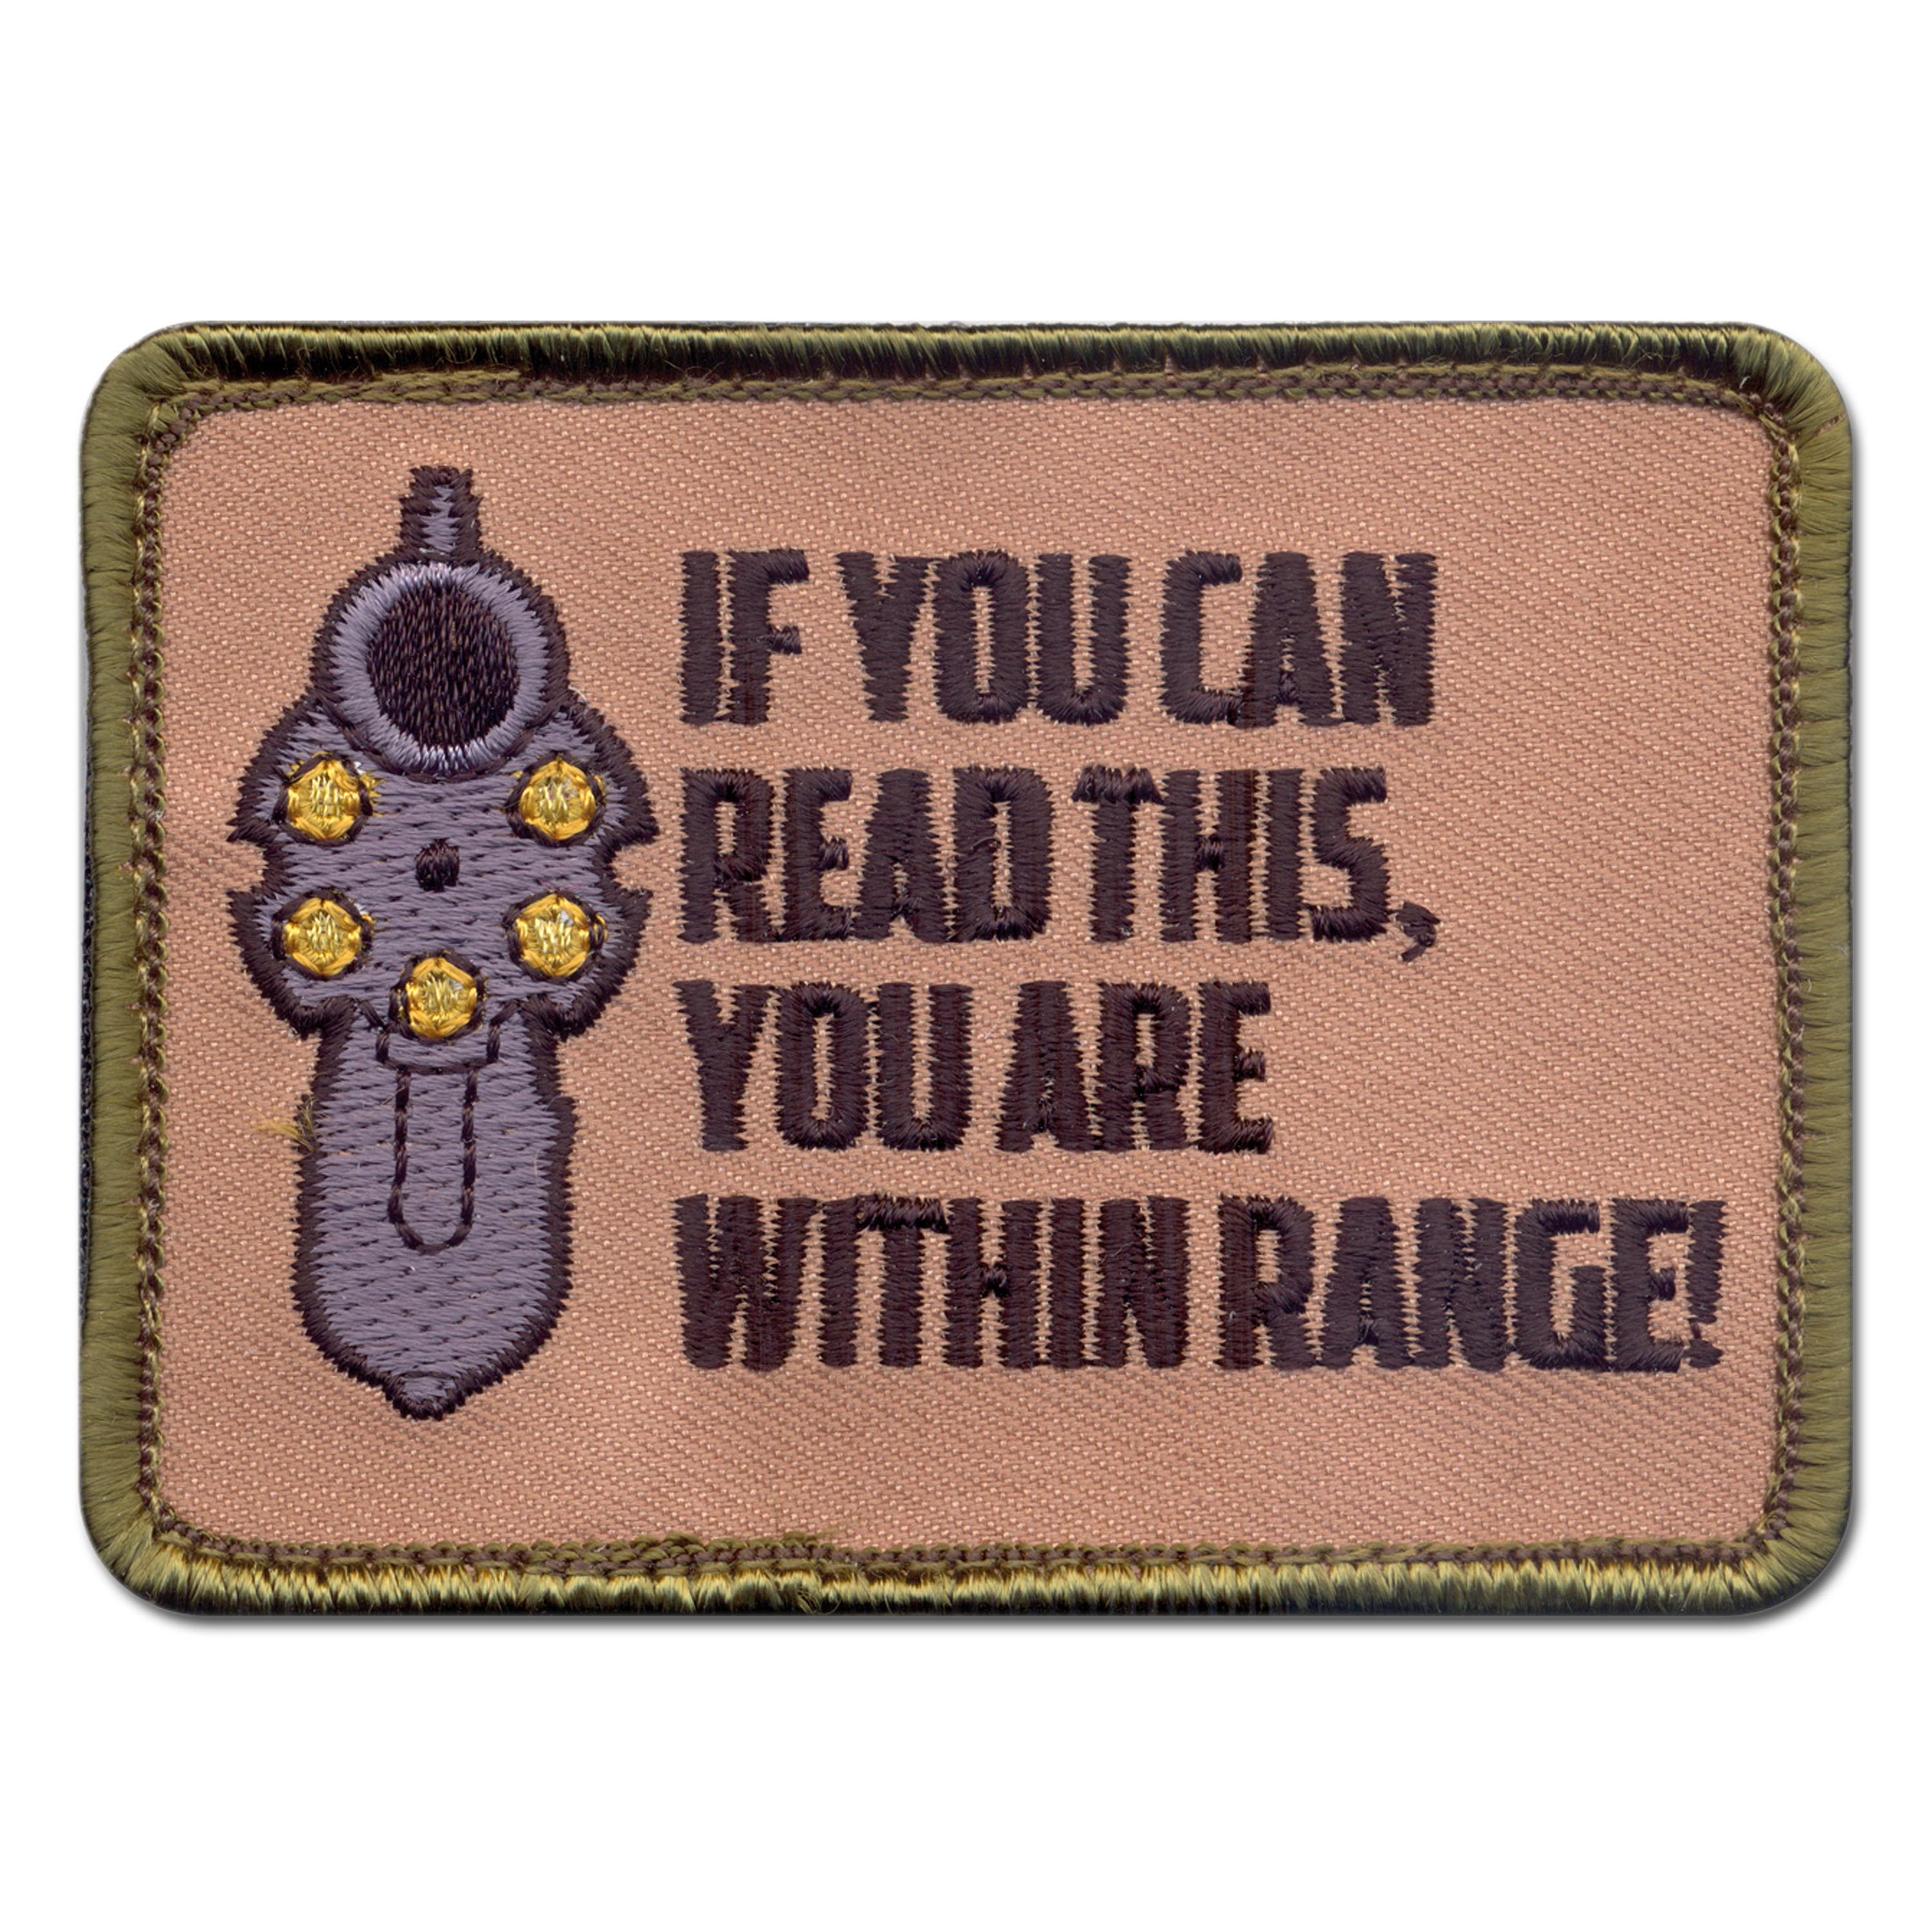 Rothco Patch If you can read this you are within range